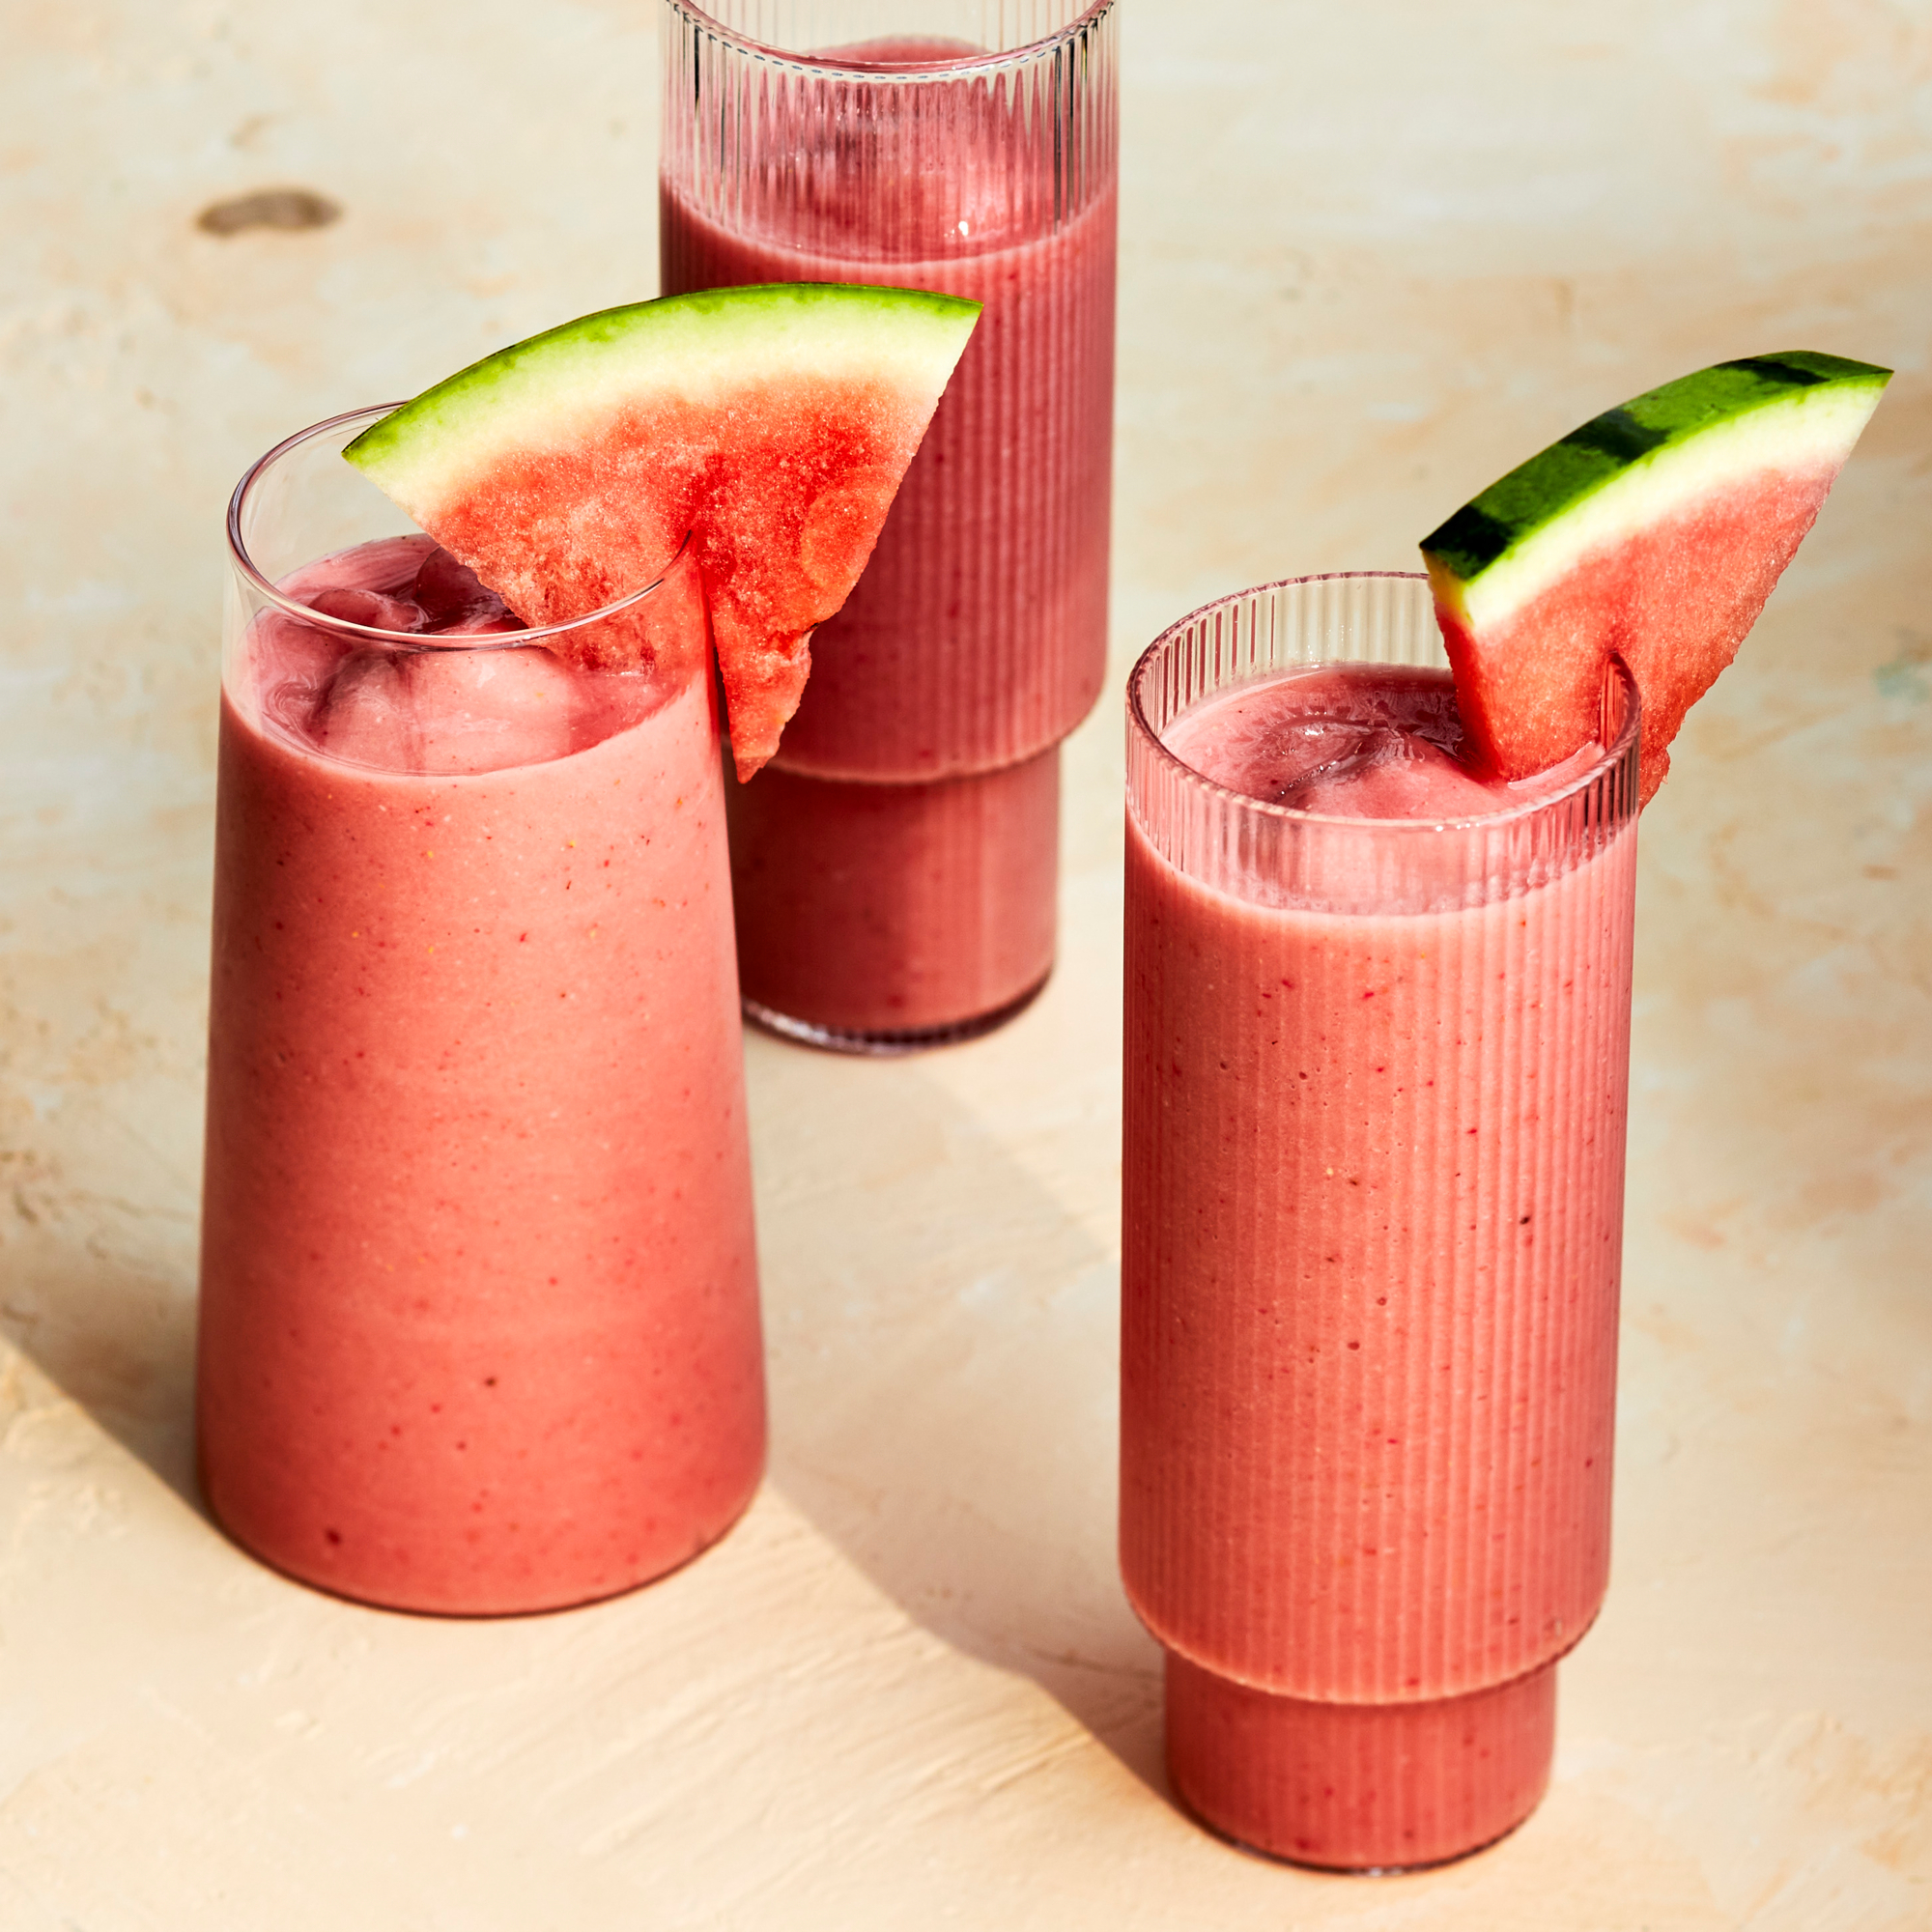 Creamy Watermelon Smoothie